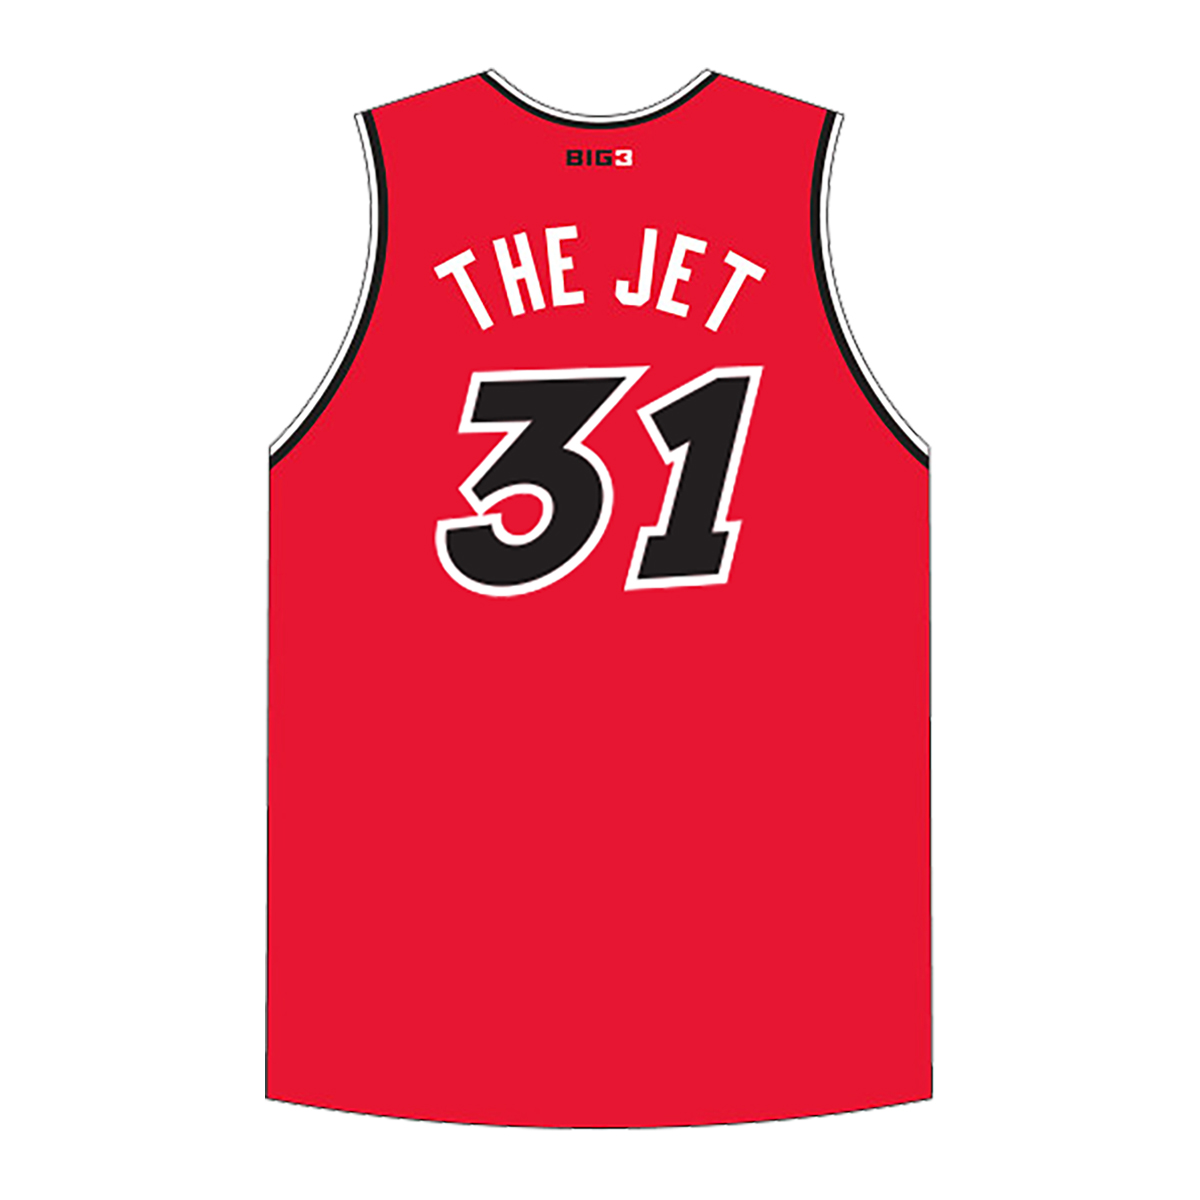 The Jet Jersey